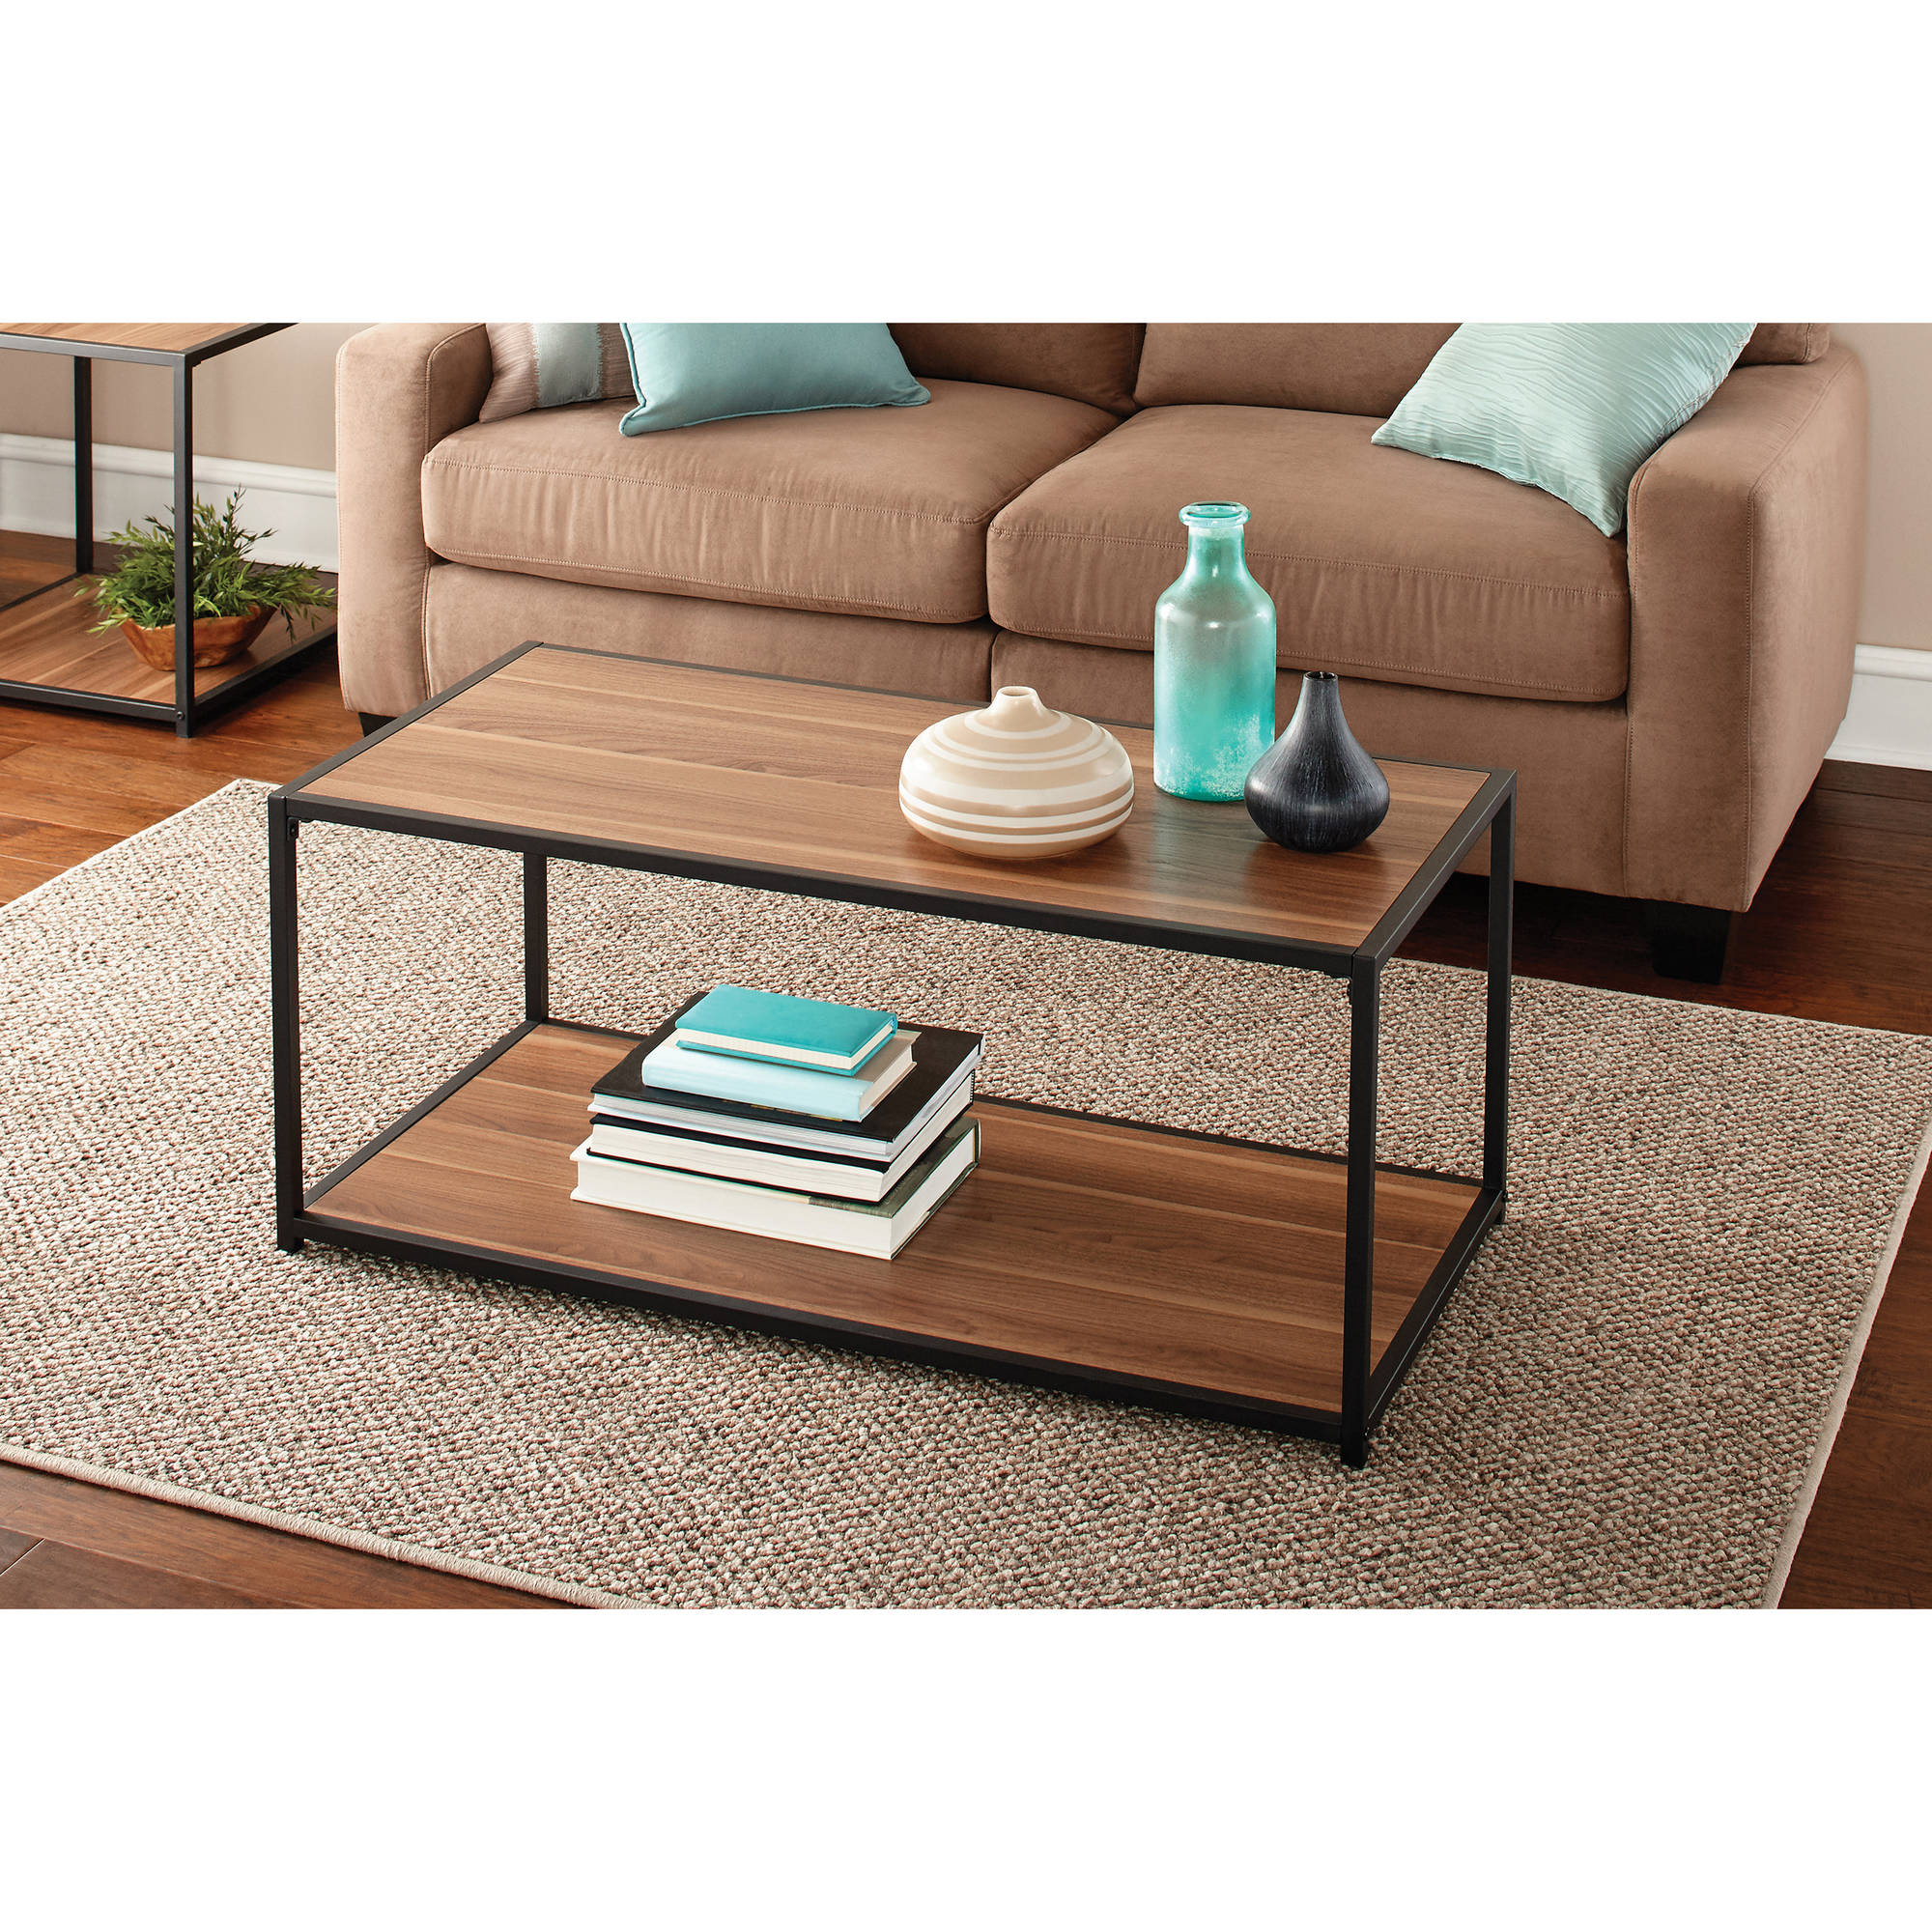 Mainstays Metro Coffee Table Multiple FinishesWalmartcom